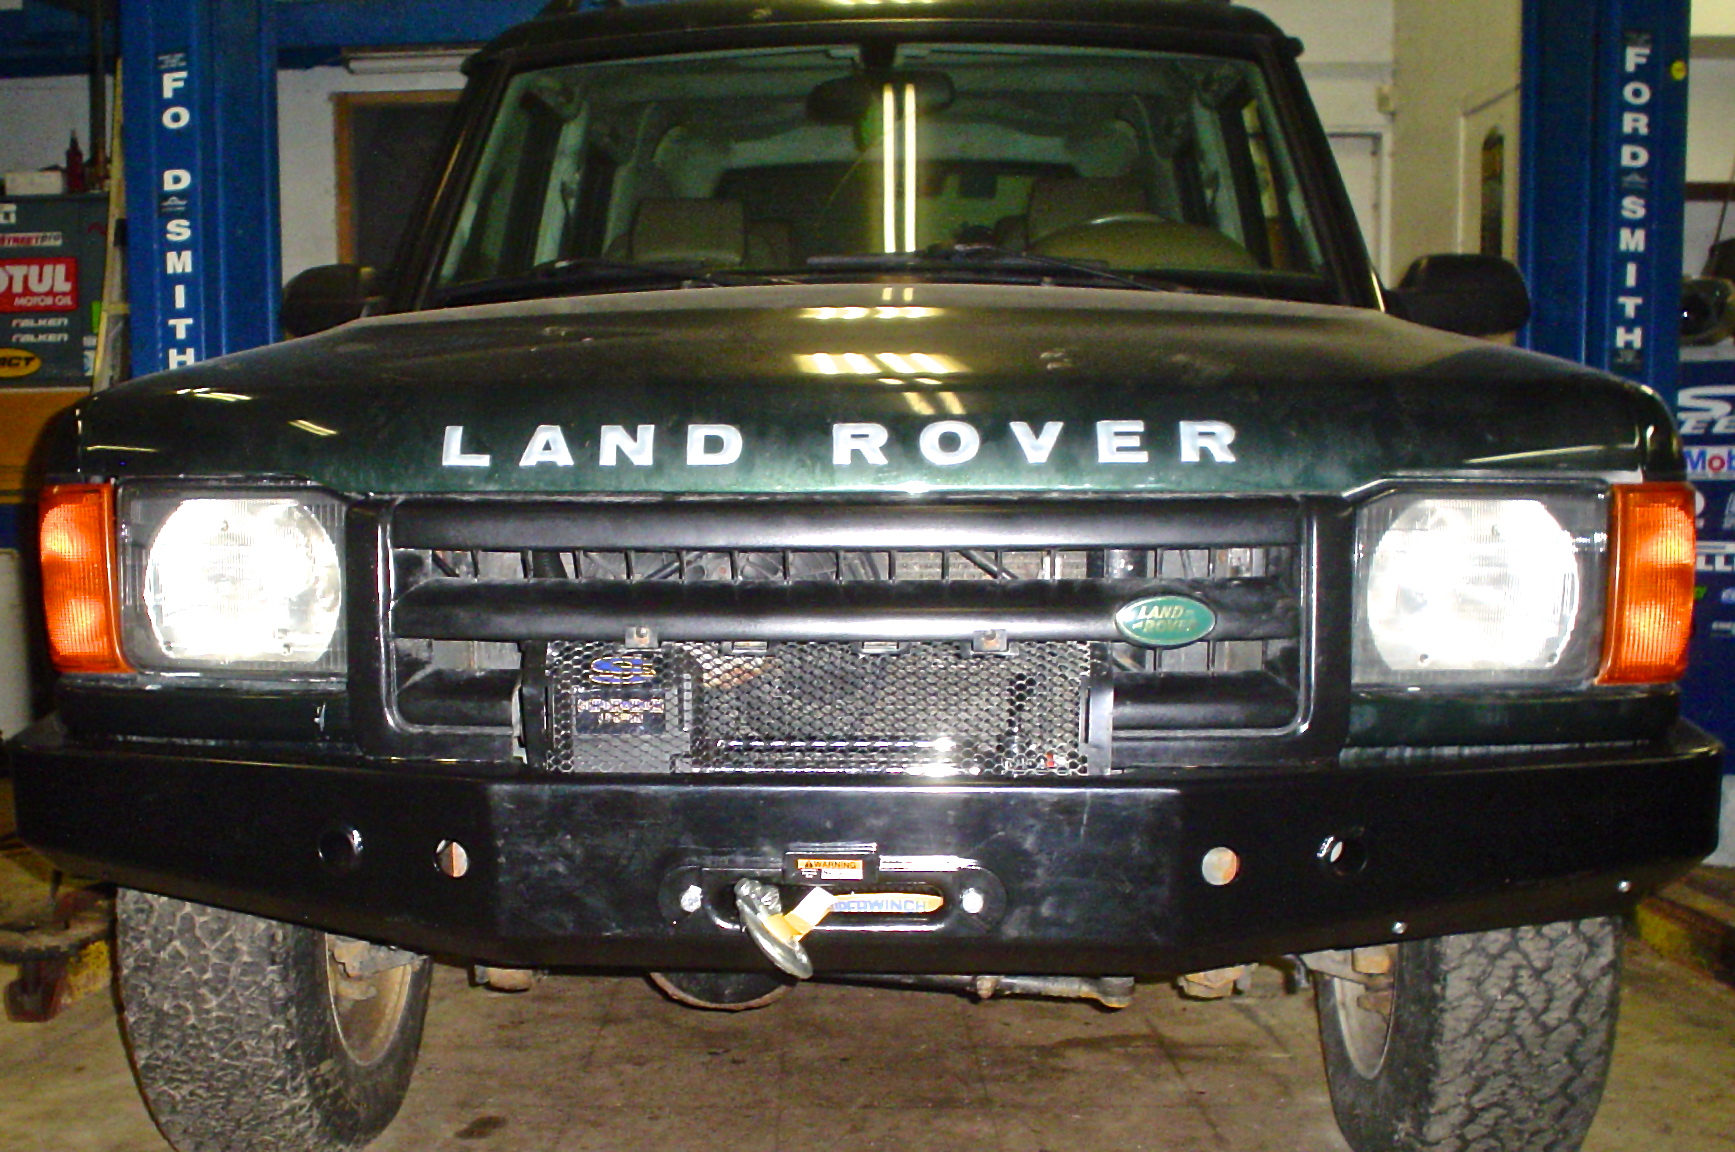 landrover fit views kb forum forums discovery name s disco do discos size brush ii guard bars land rover